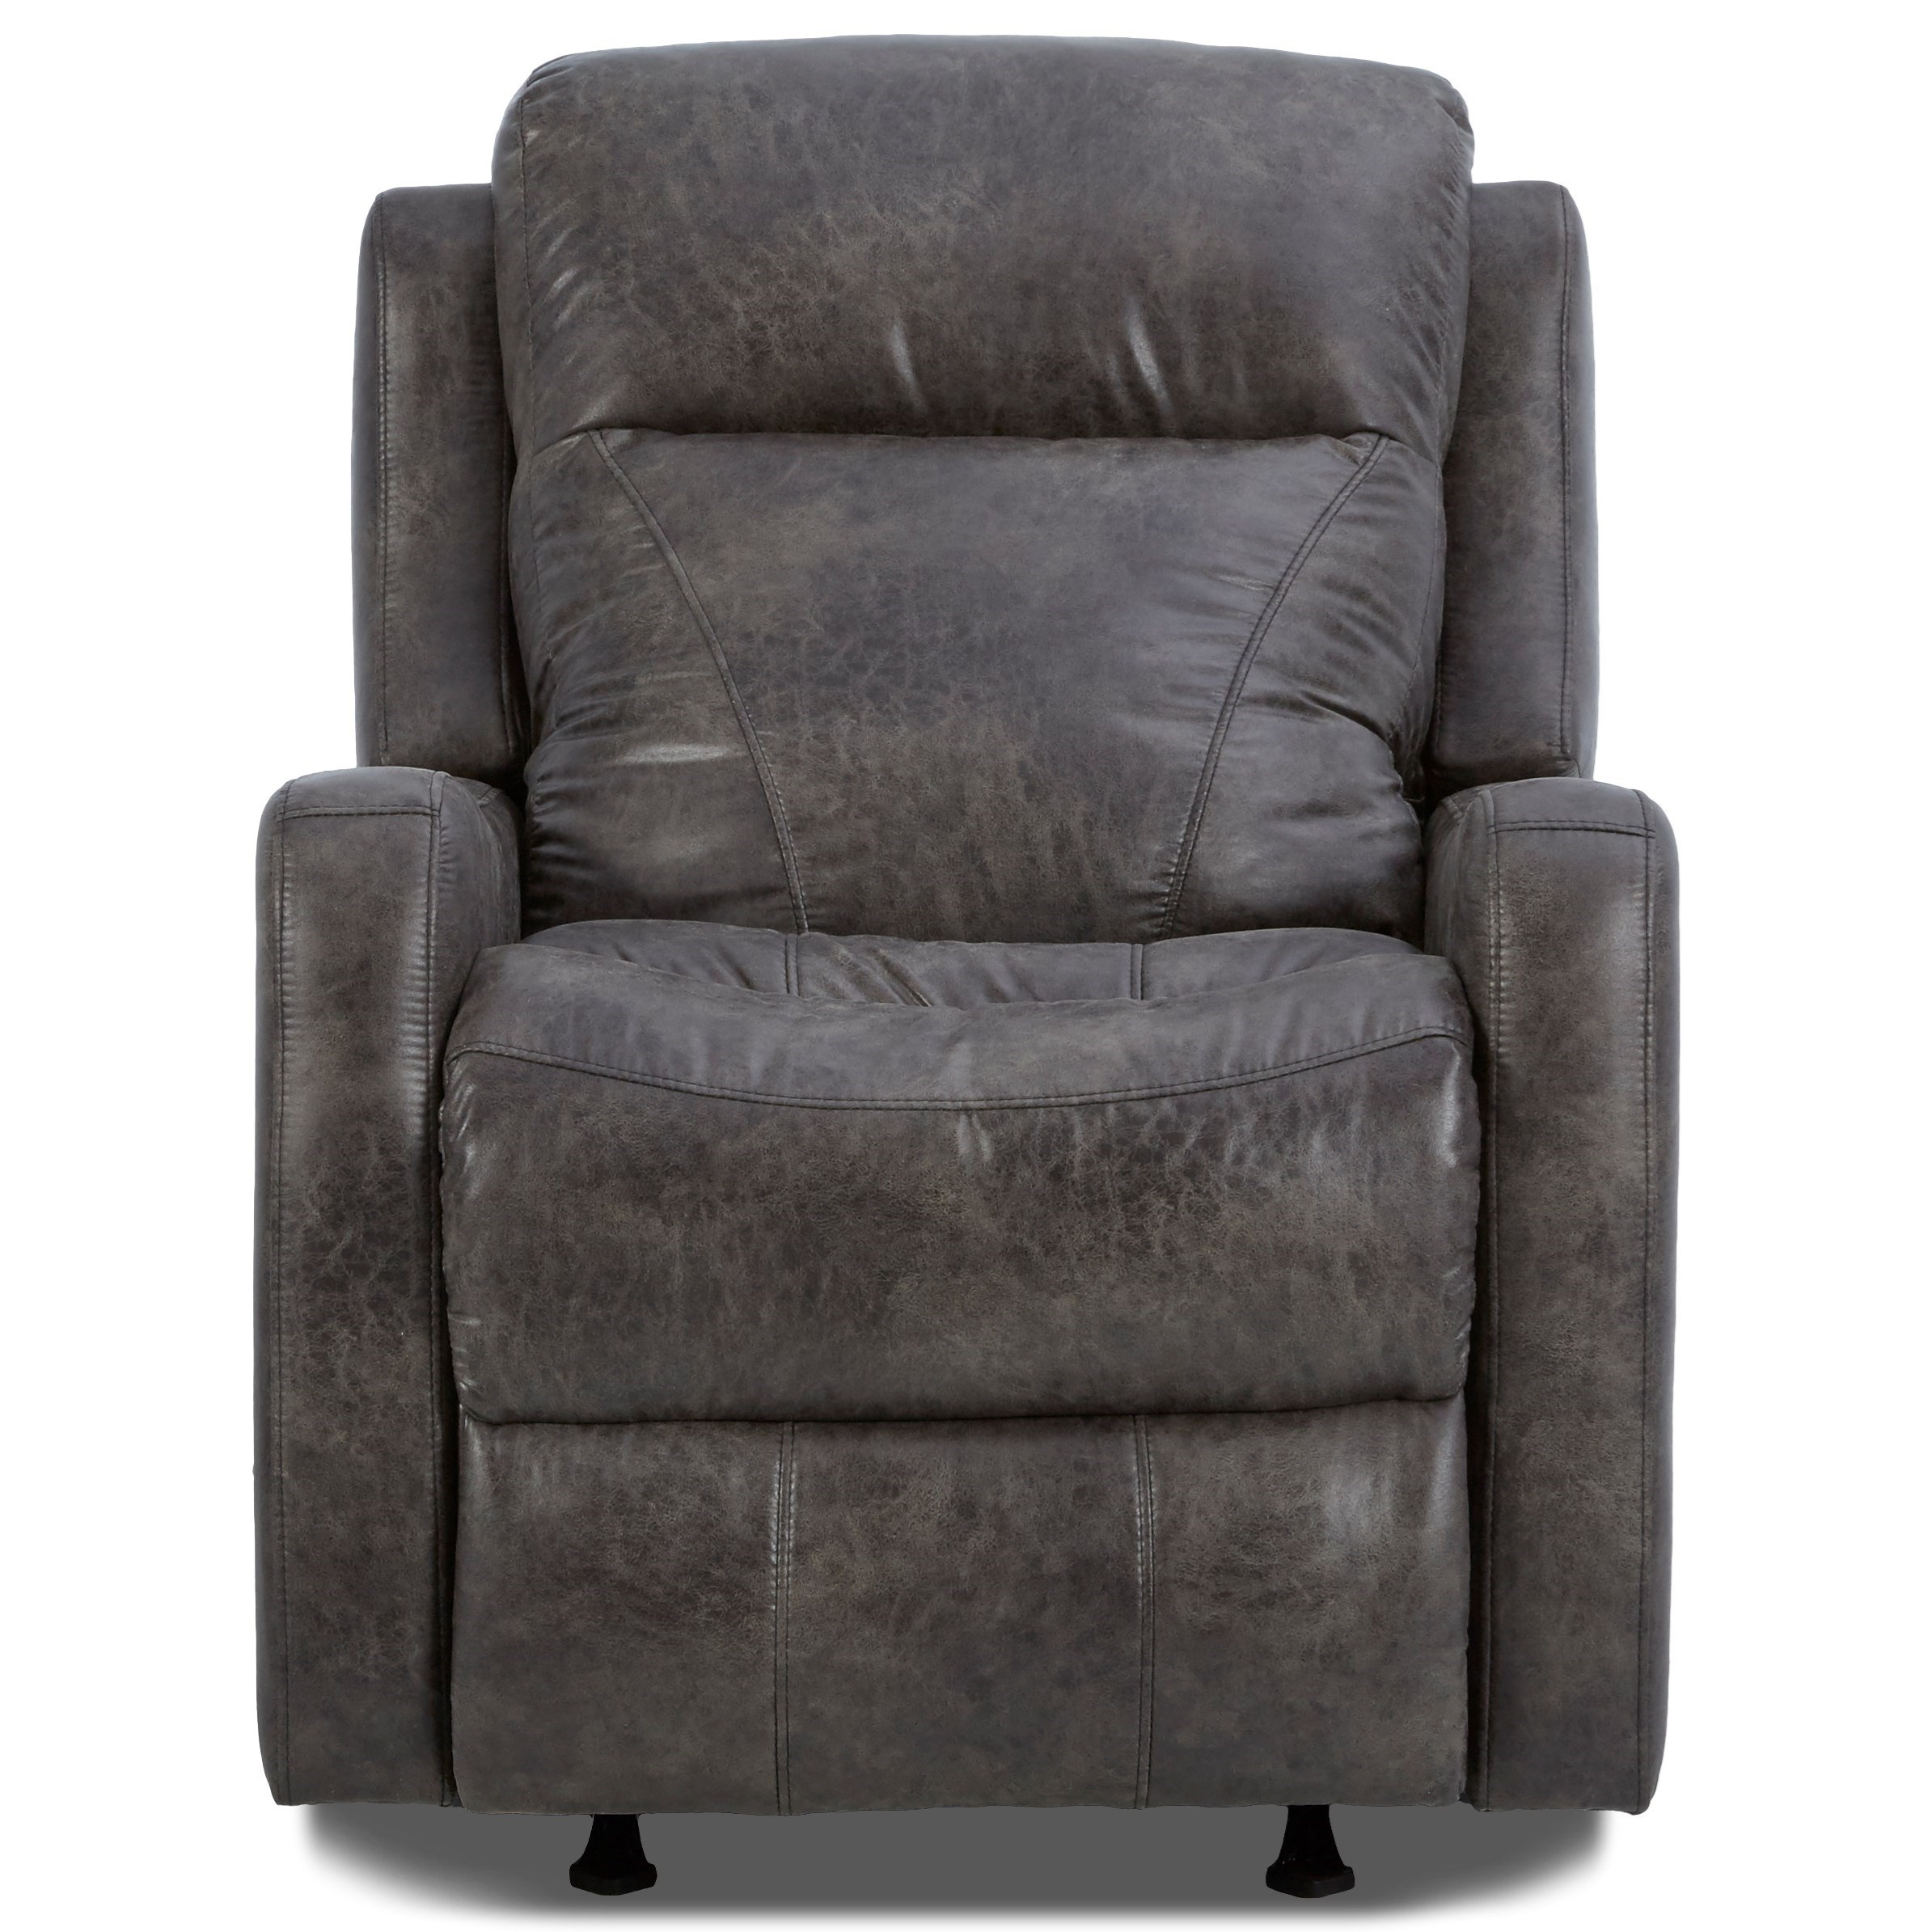 Klaussner Caprice Power Recliner with Power Headrest - Item Number: 77843-8 PWRC